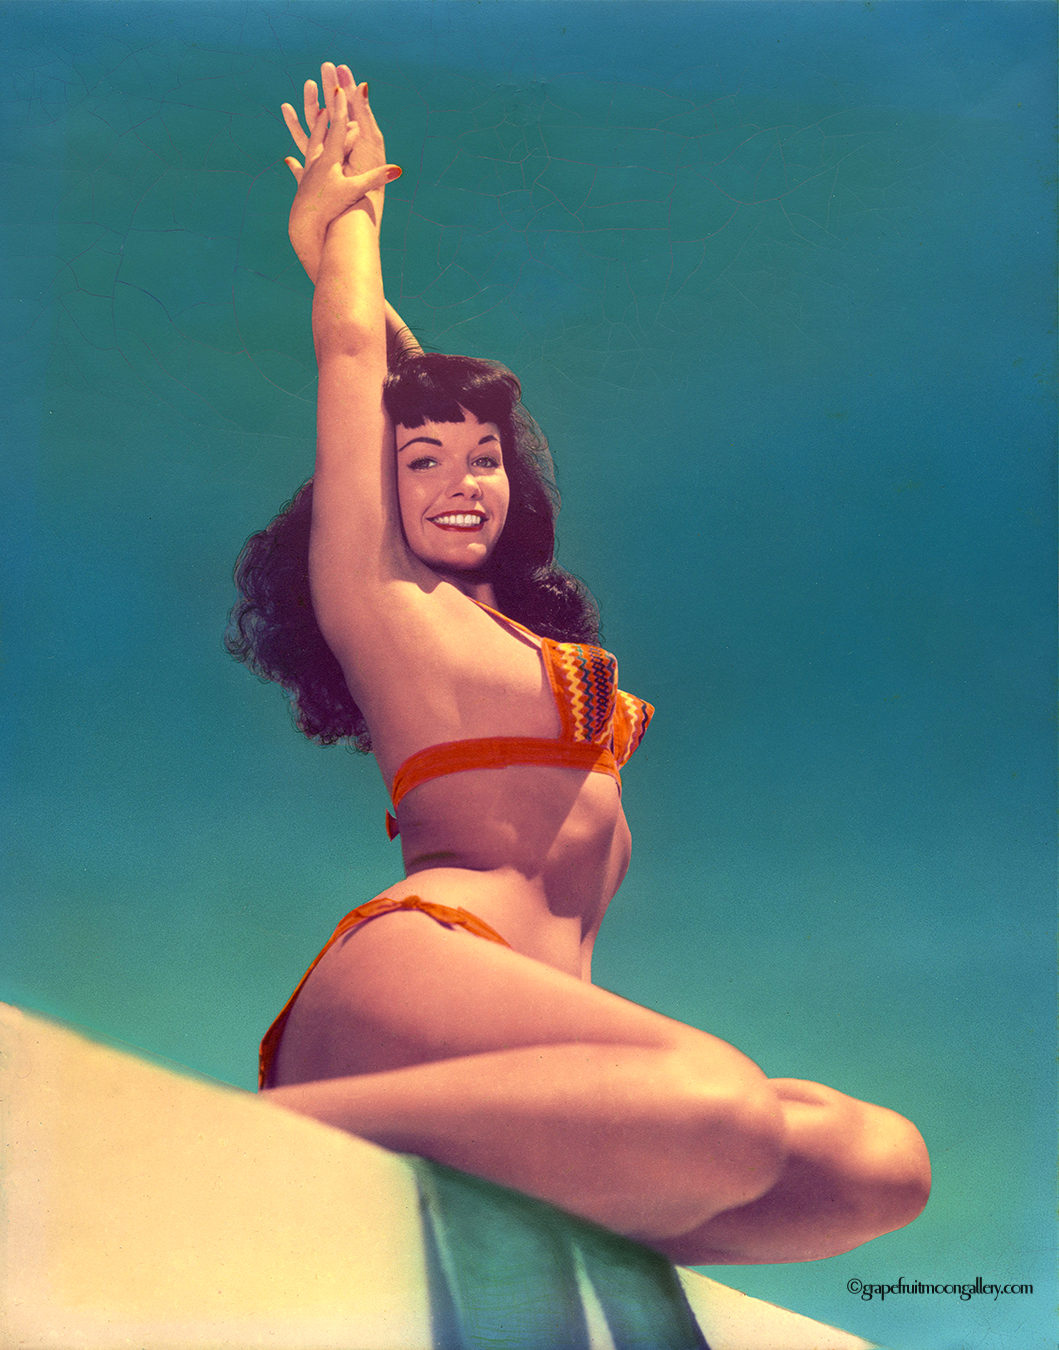 Bettie Page smiling with hands overhead